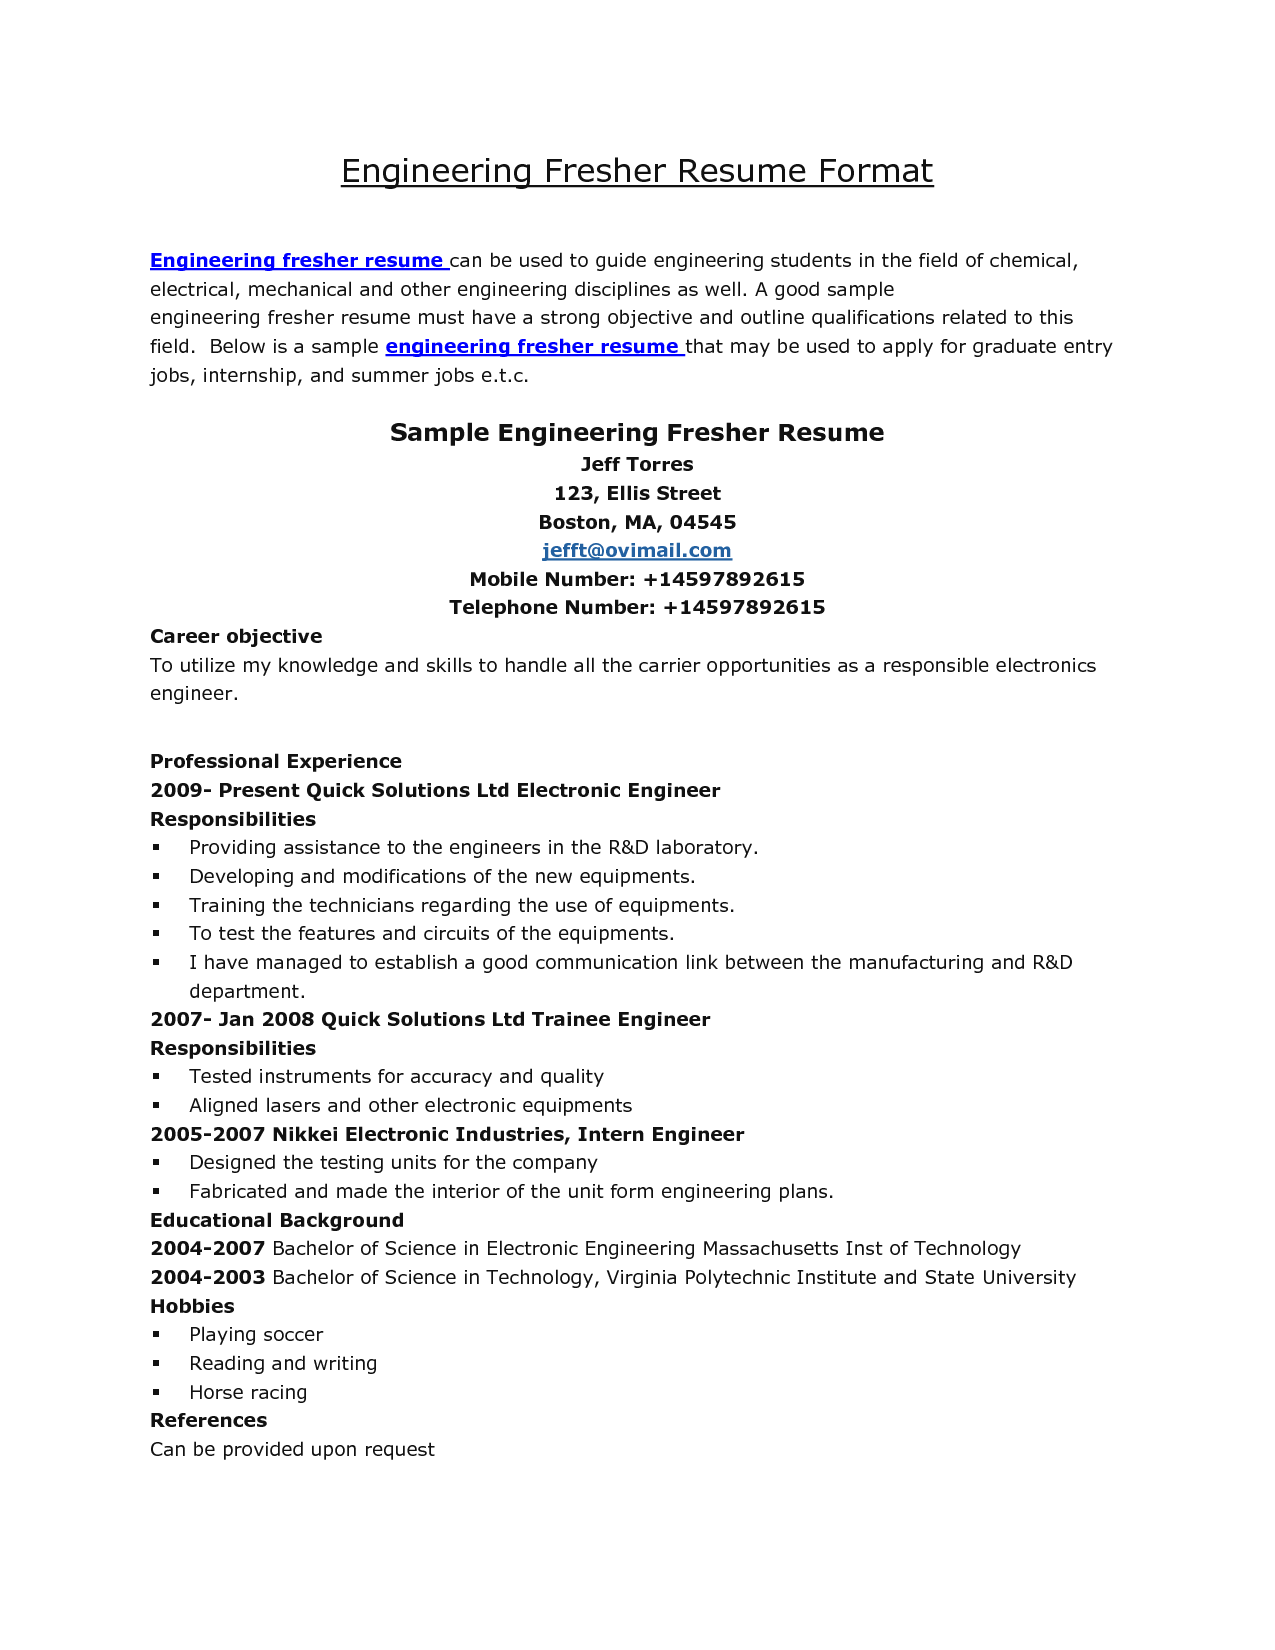 ... Biochemical Engineer Receptionist Cover Letter Electrical. Resume  Format For Engineering Students Http Jobresume Home